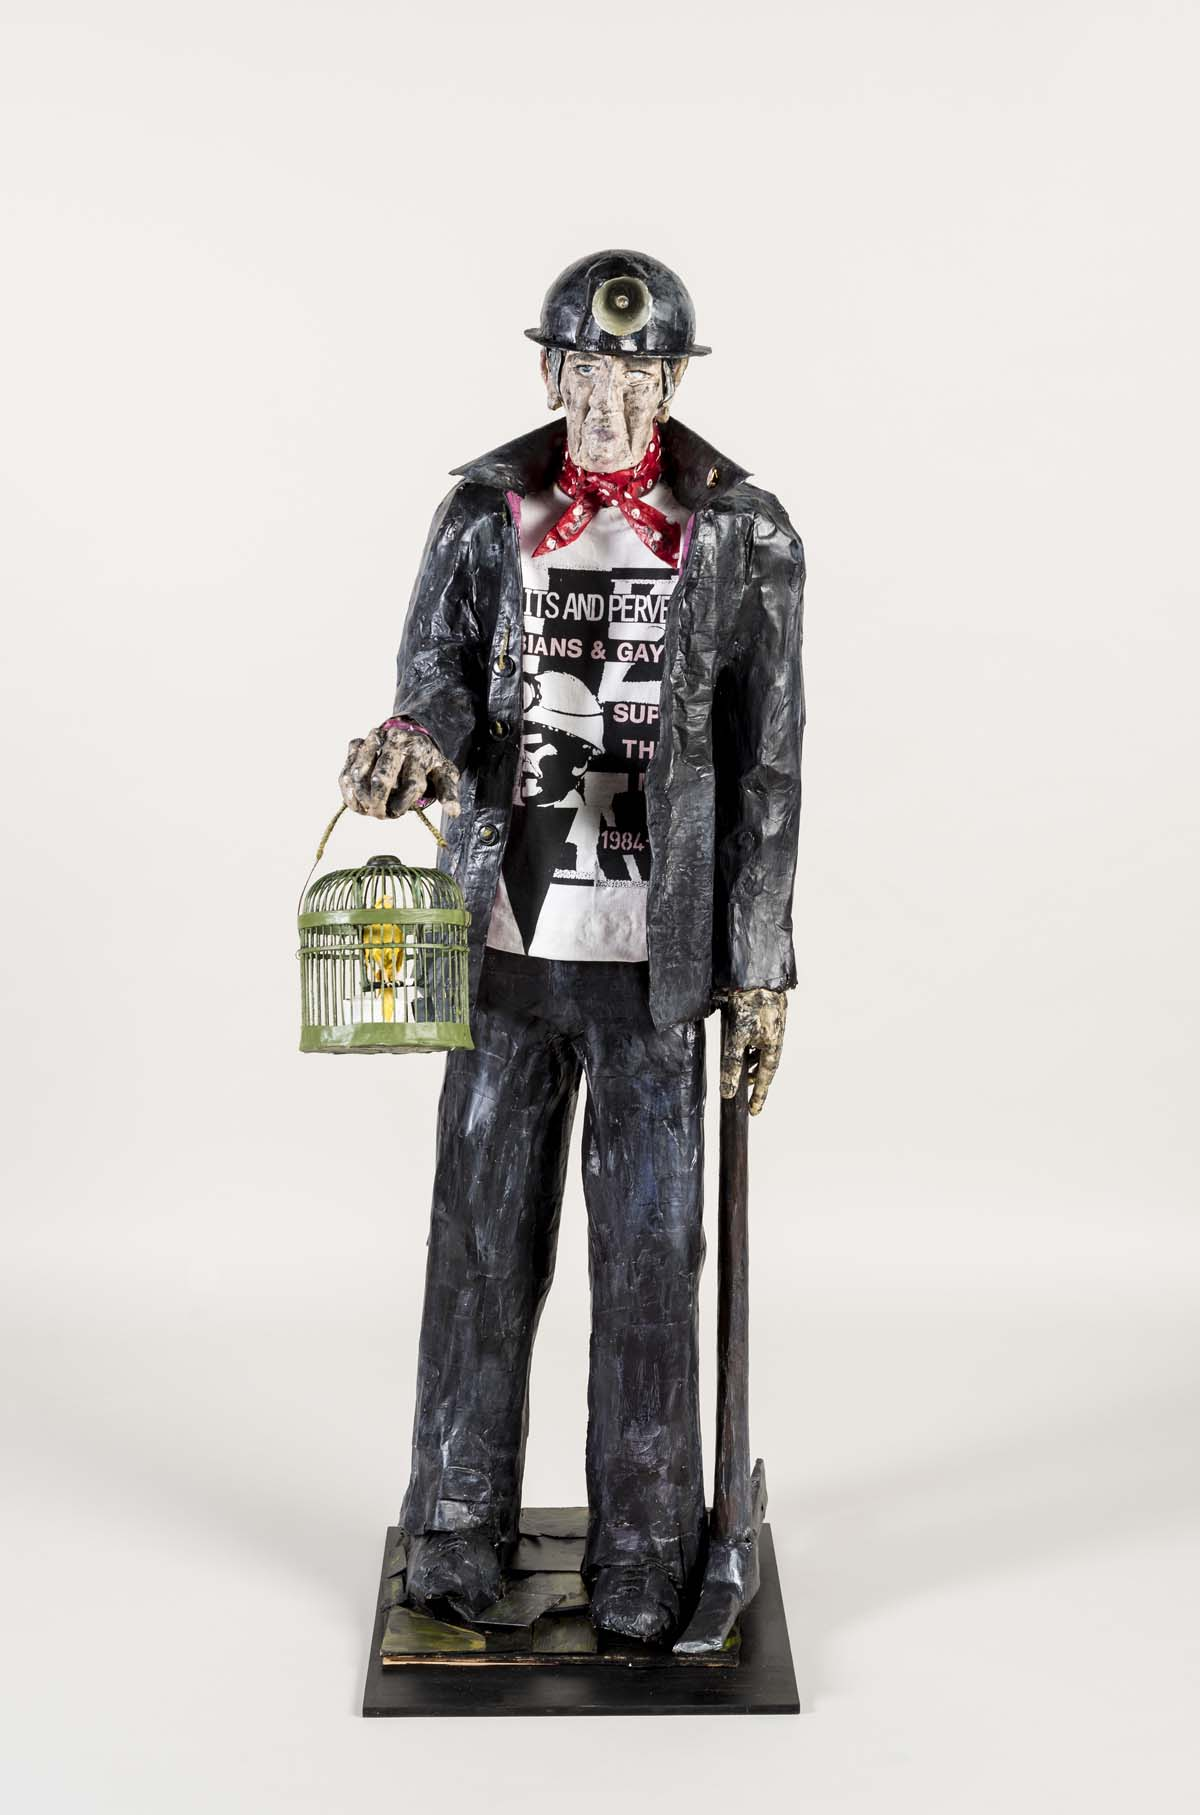 model of a coal miner carrying a canary in a cage and wearing a Gay rights t-shirt